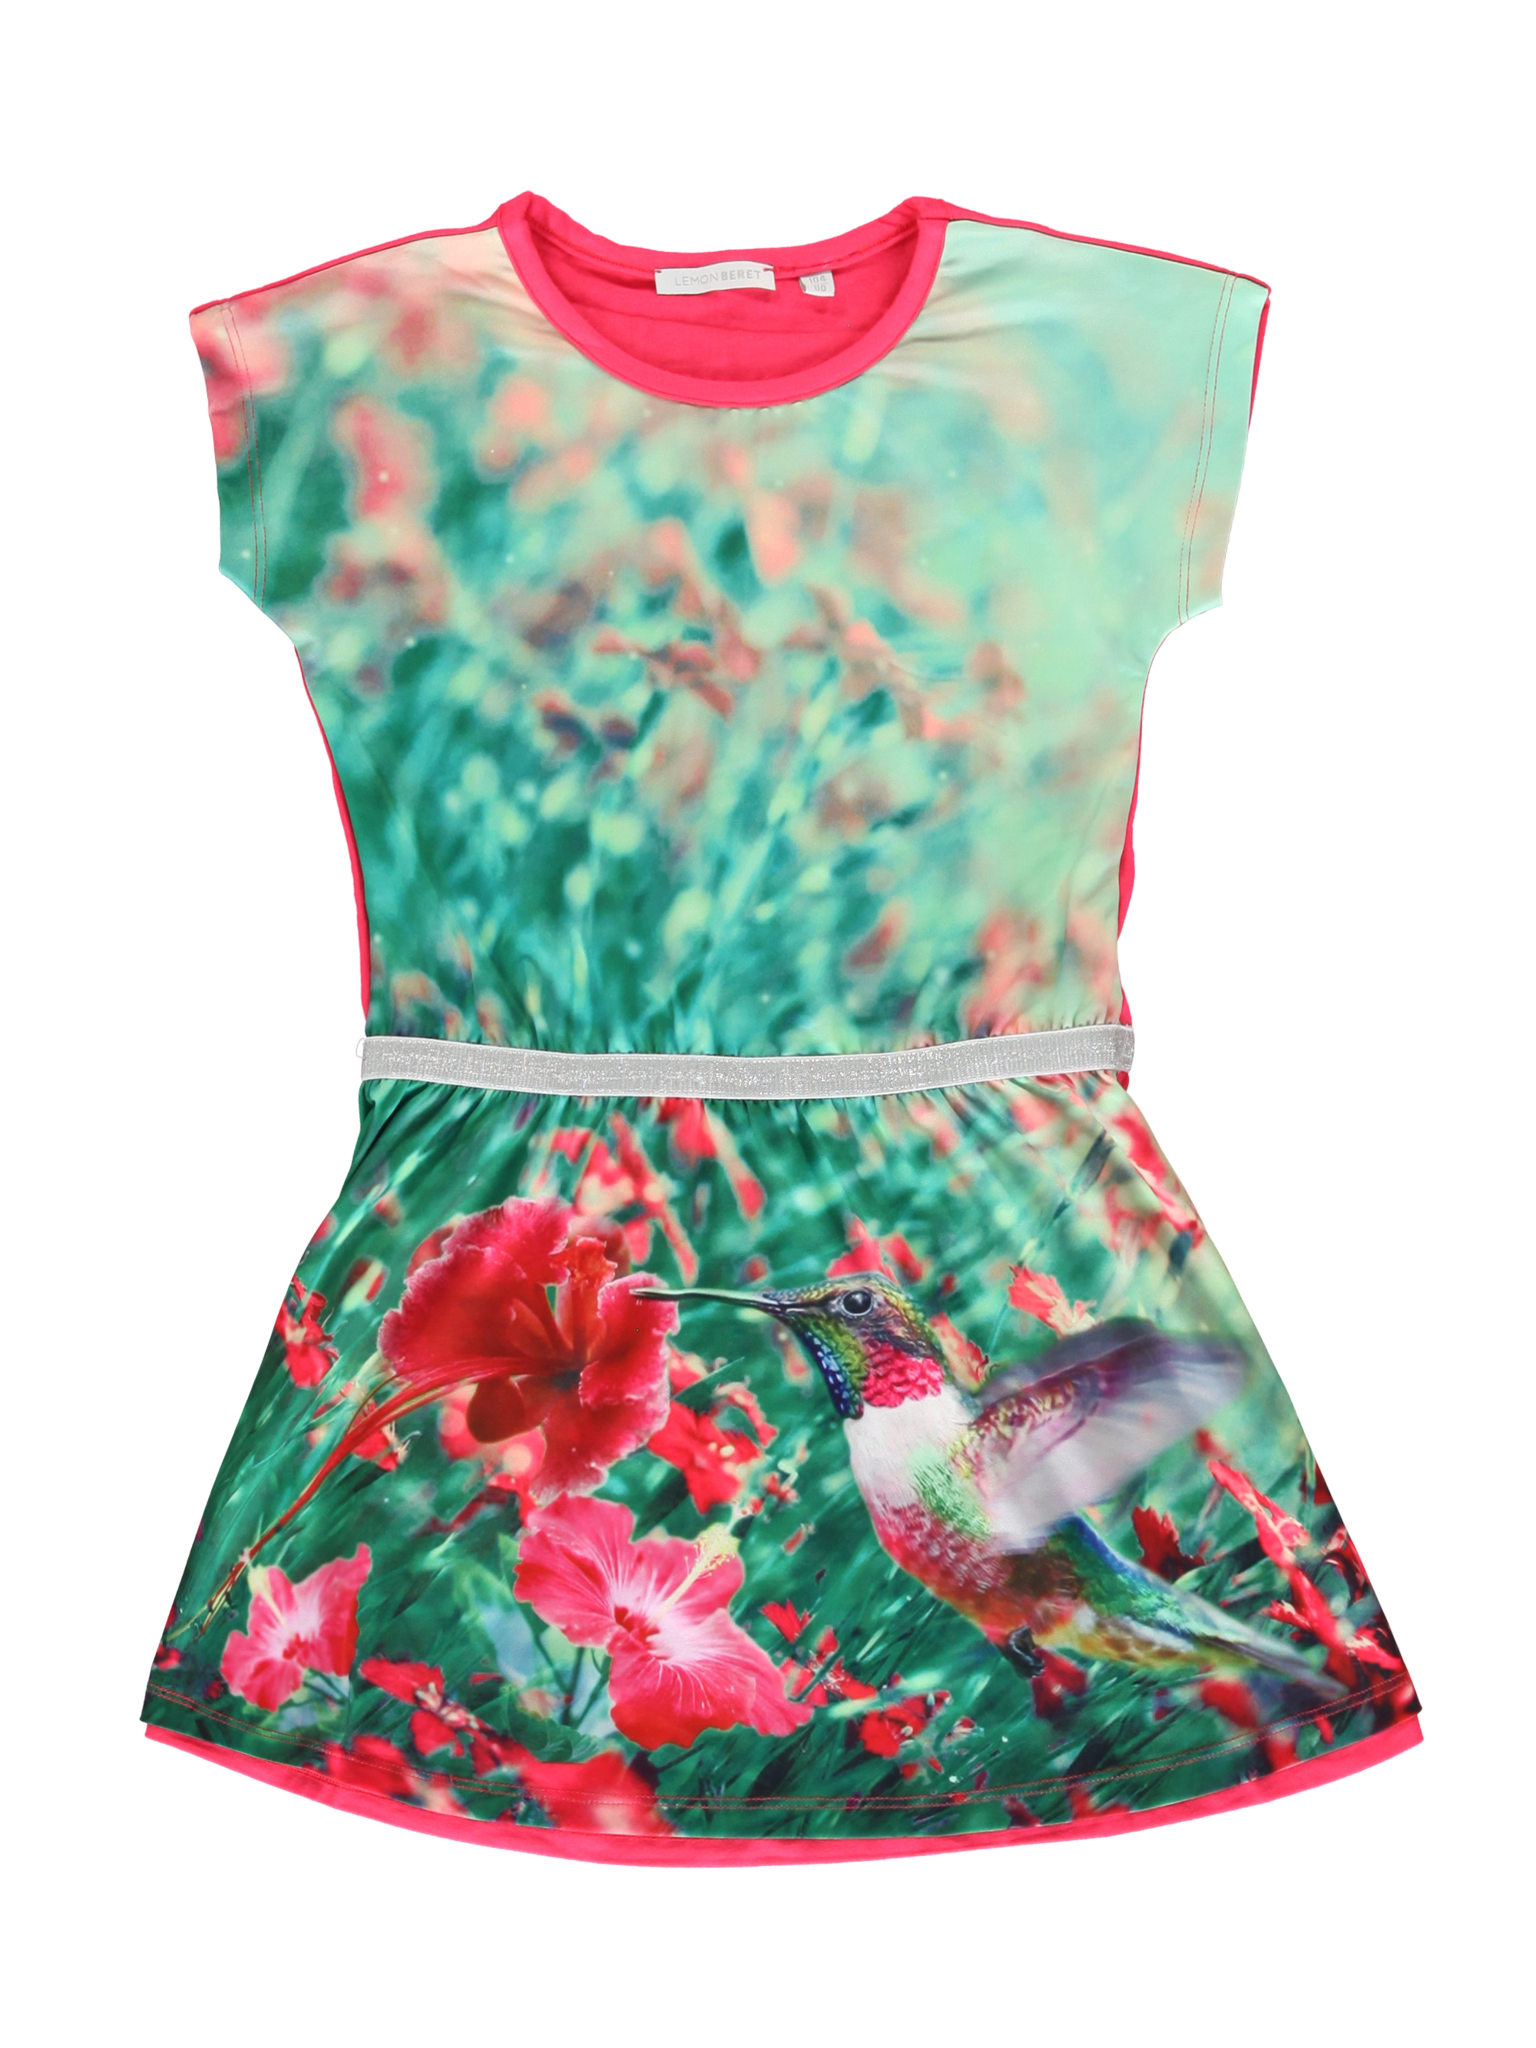 All Brands | Summerproducts Small Girls | Dress | 10 pcs/box